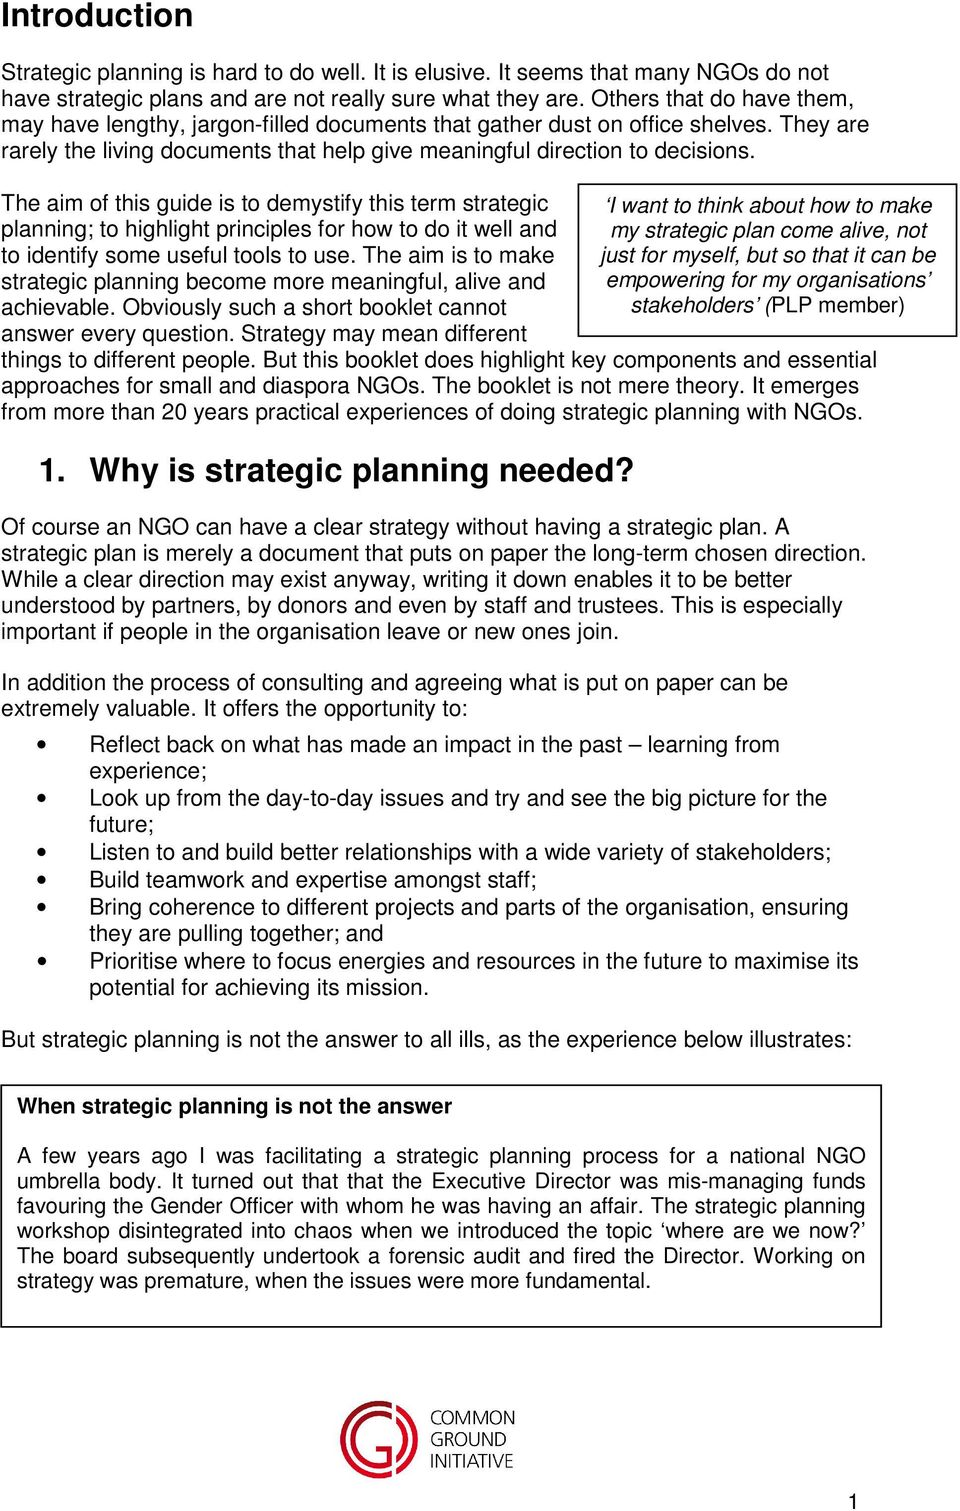 The aim of this guide is to demystify this term strategic I want to think about how to make planning; to highlight principles for how to do it well and my strategic plan come alive, not to identify